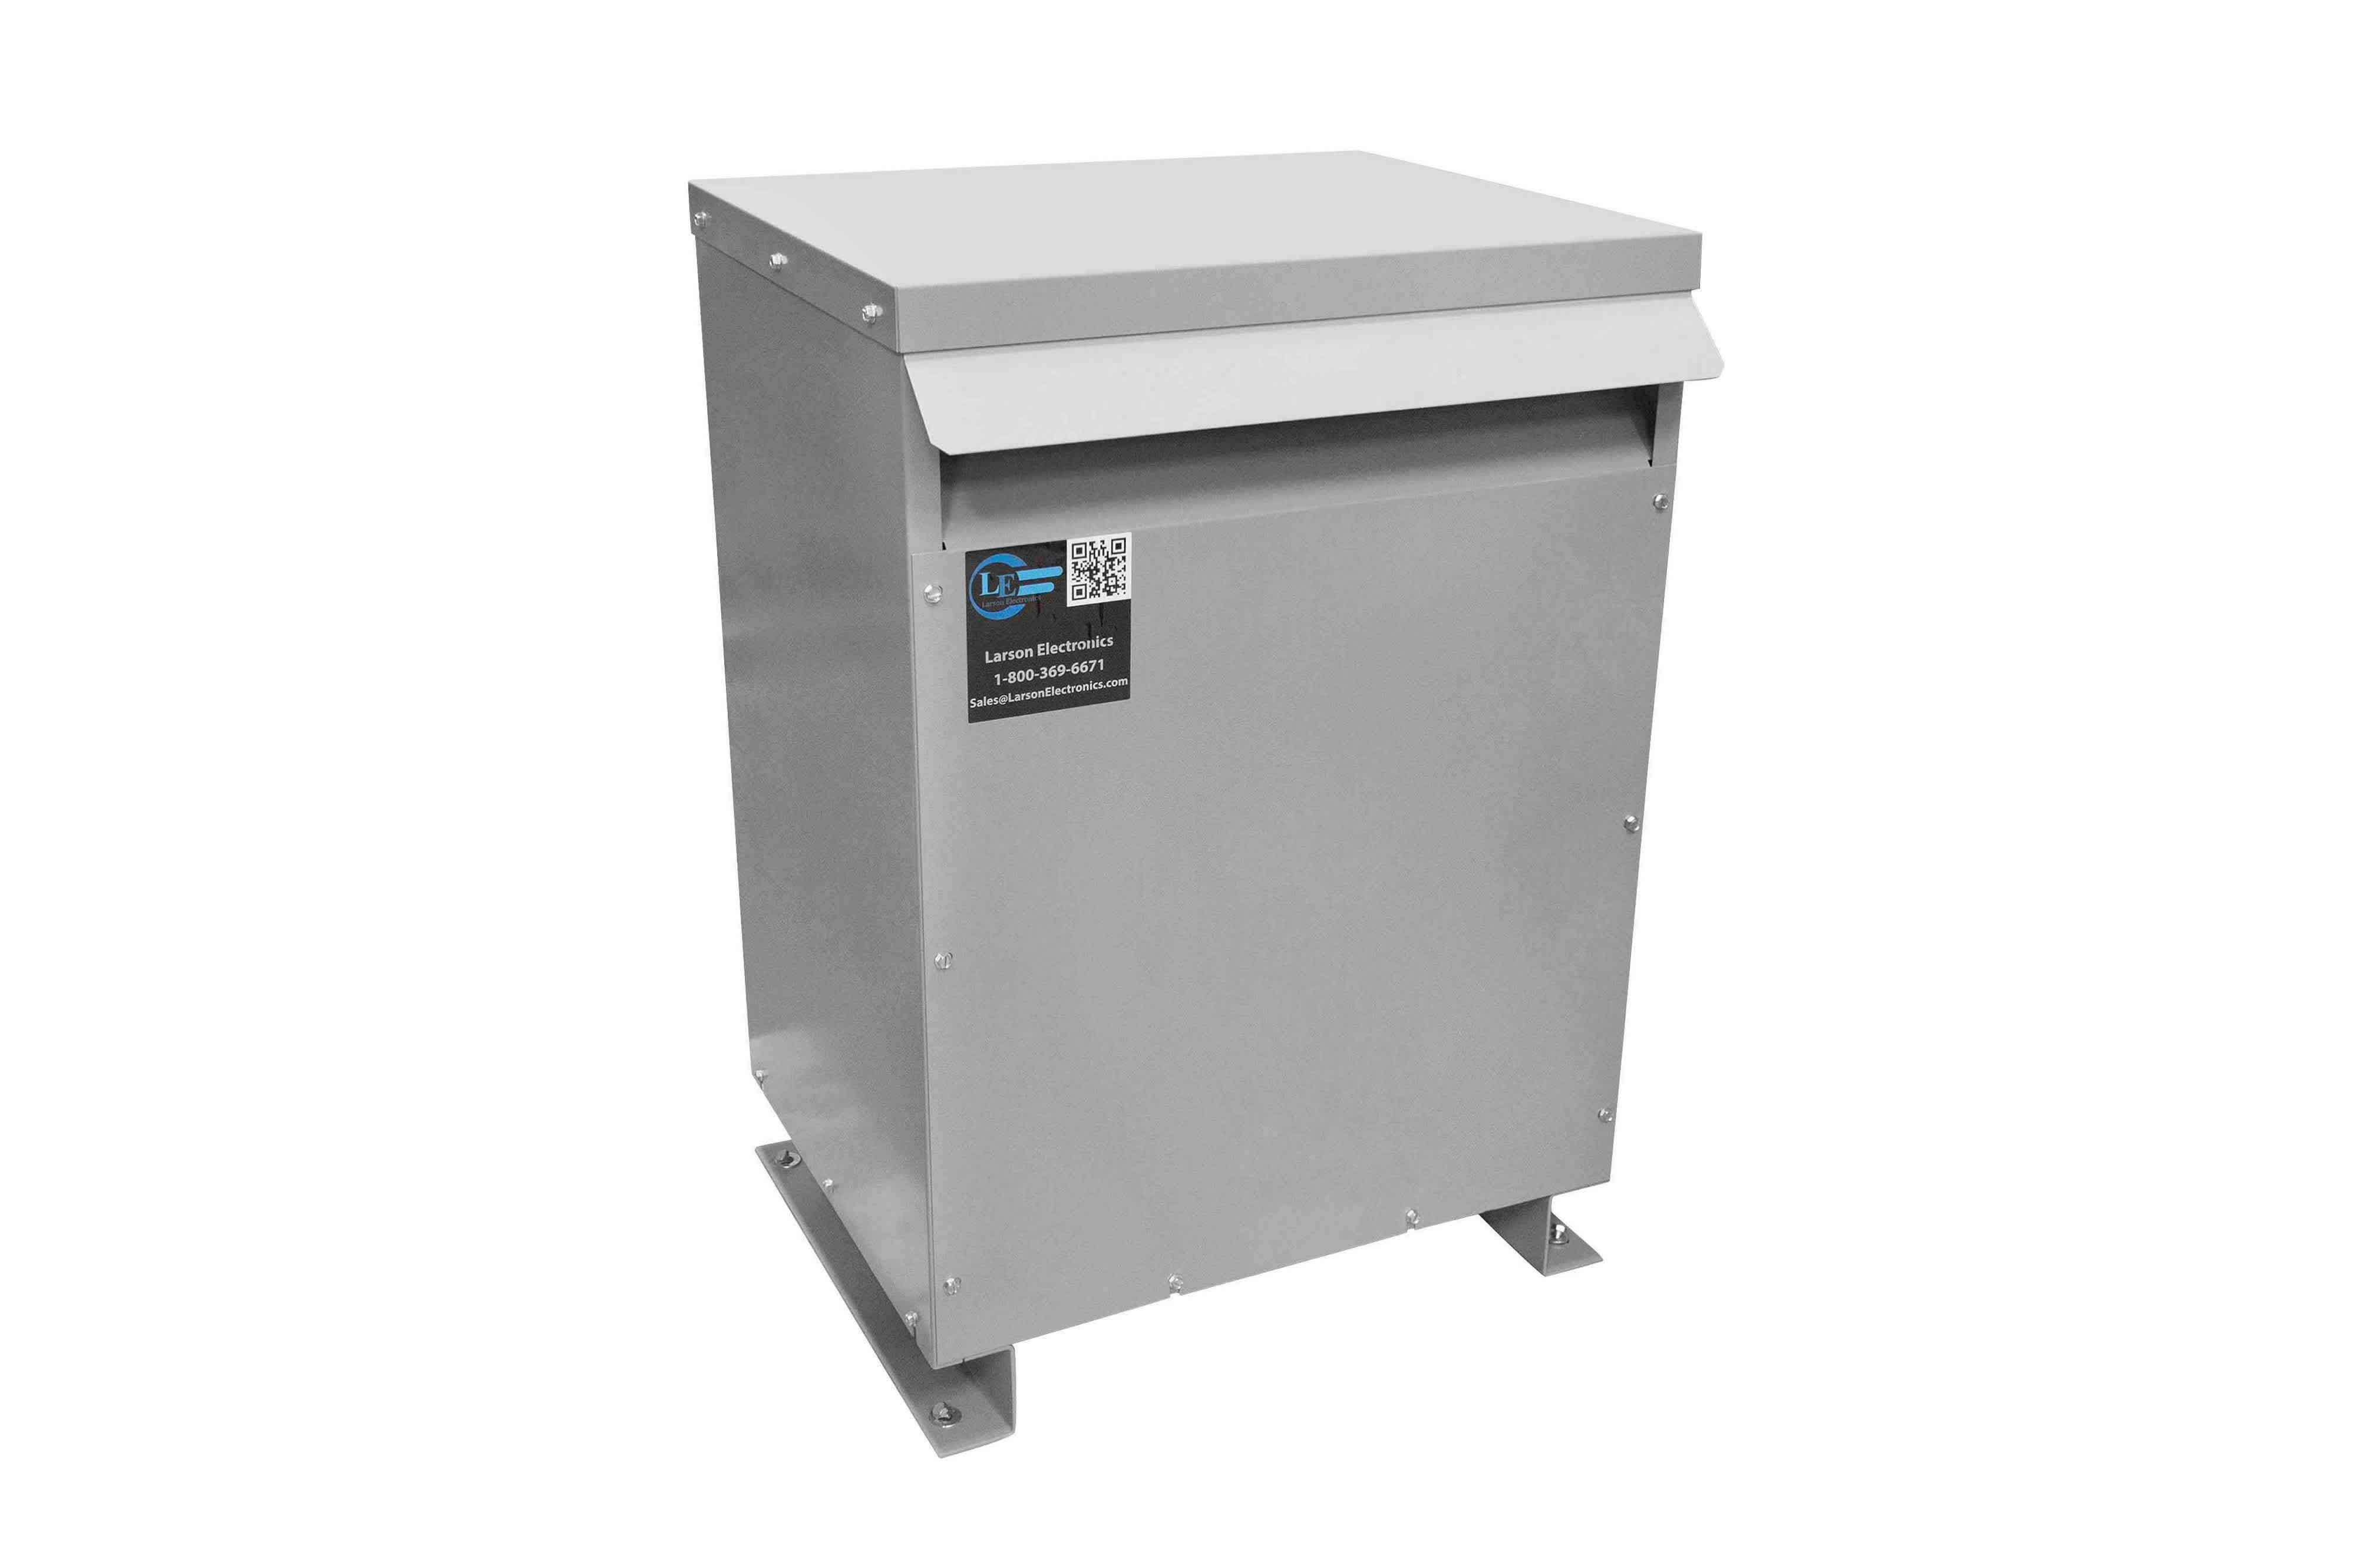 275 kVA 3PH Isolation Transformer, 460V Wye Primary, 575V Delta Secondary, N3R, Ventilated, 60 Hz